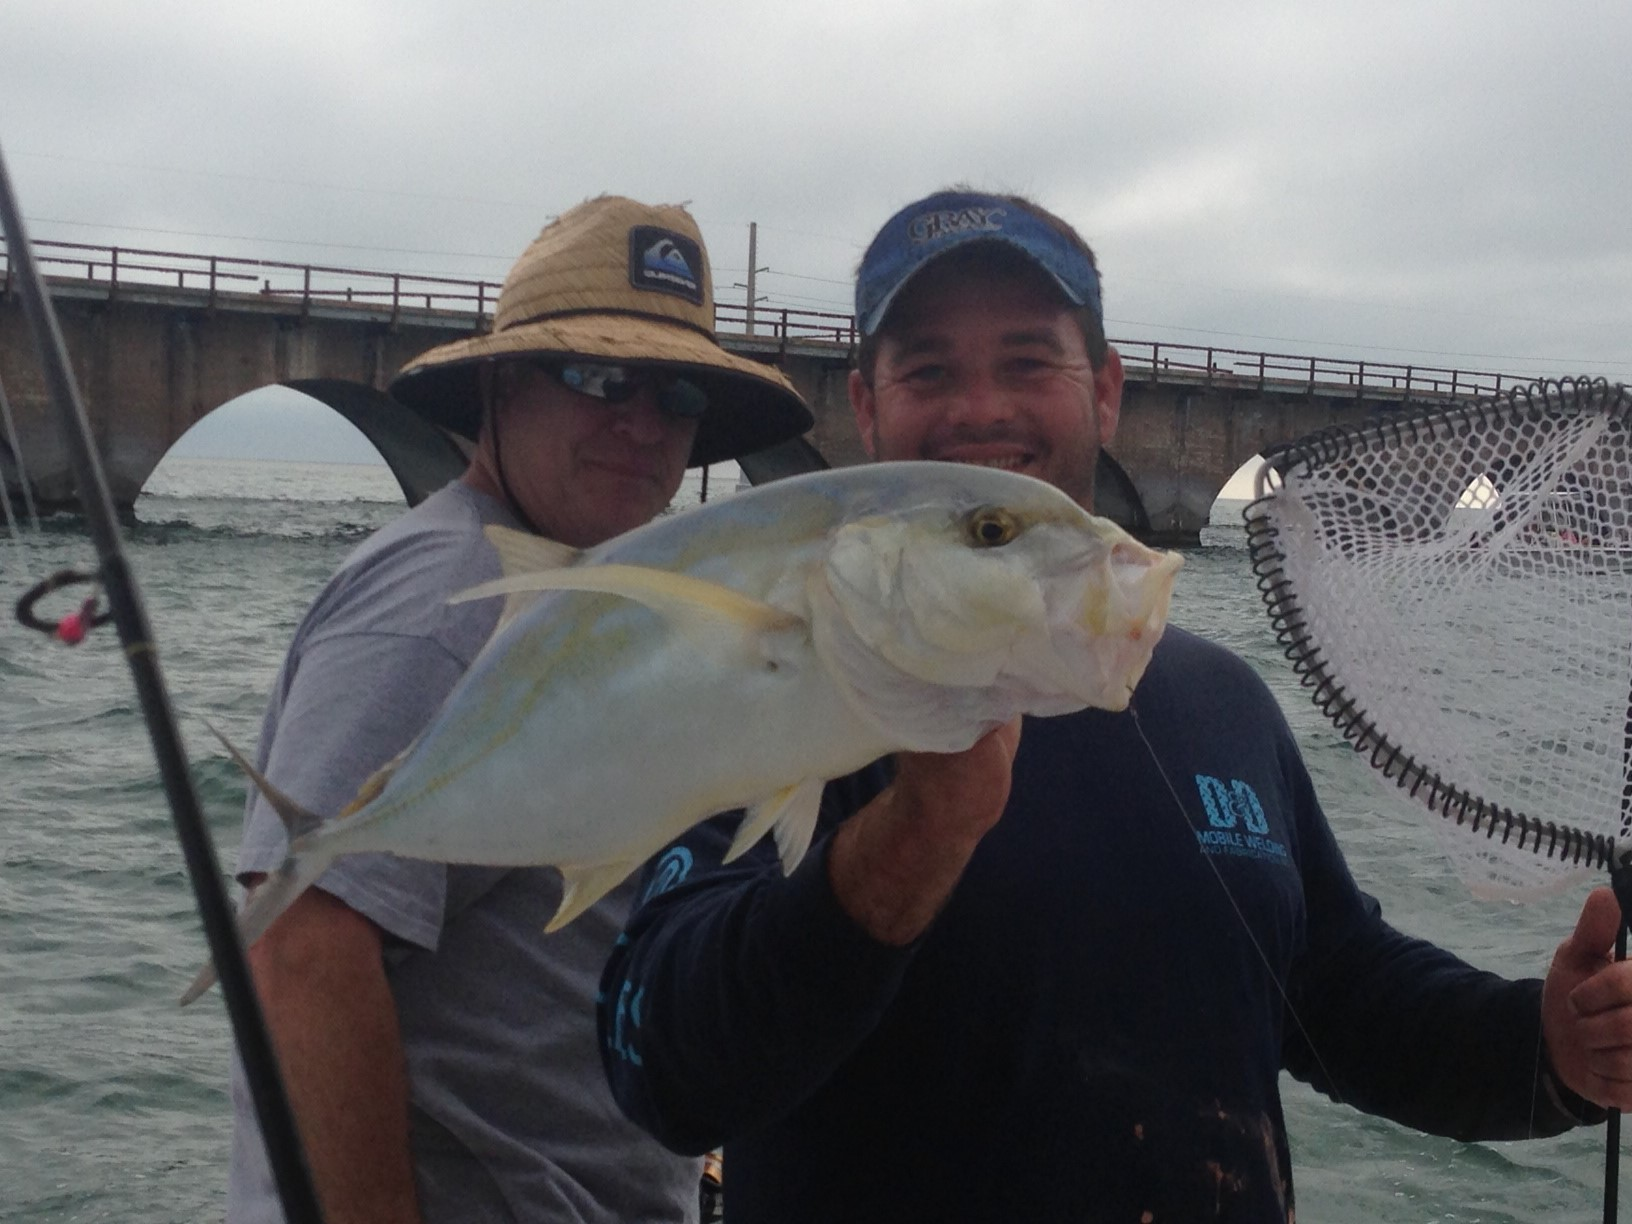 Yellowjack caught charter fishing off the Seven Mile bridge in Marathon part or the beautiful Fl Keys!